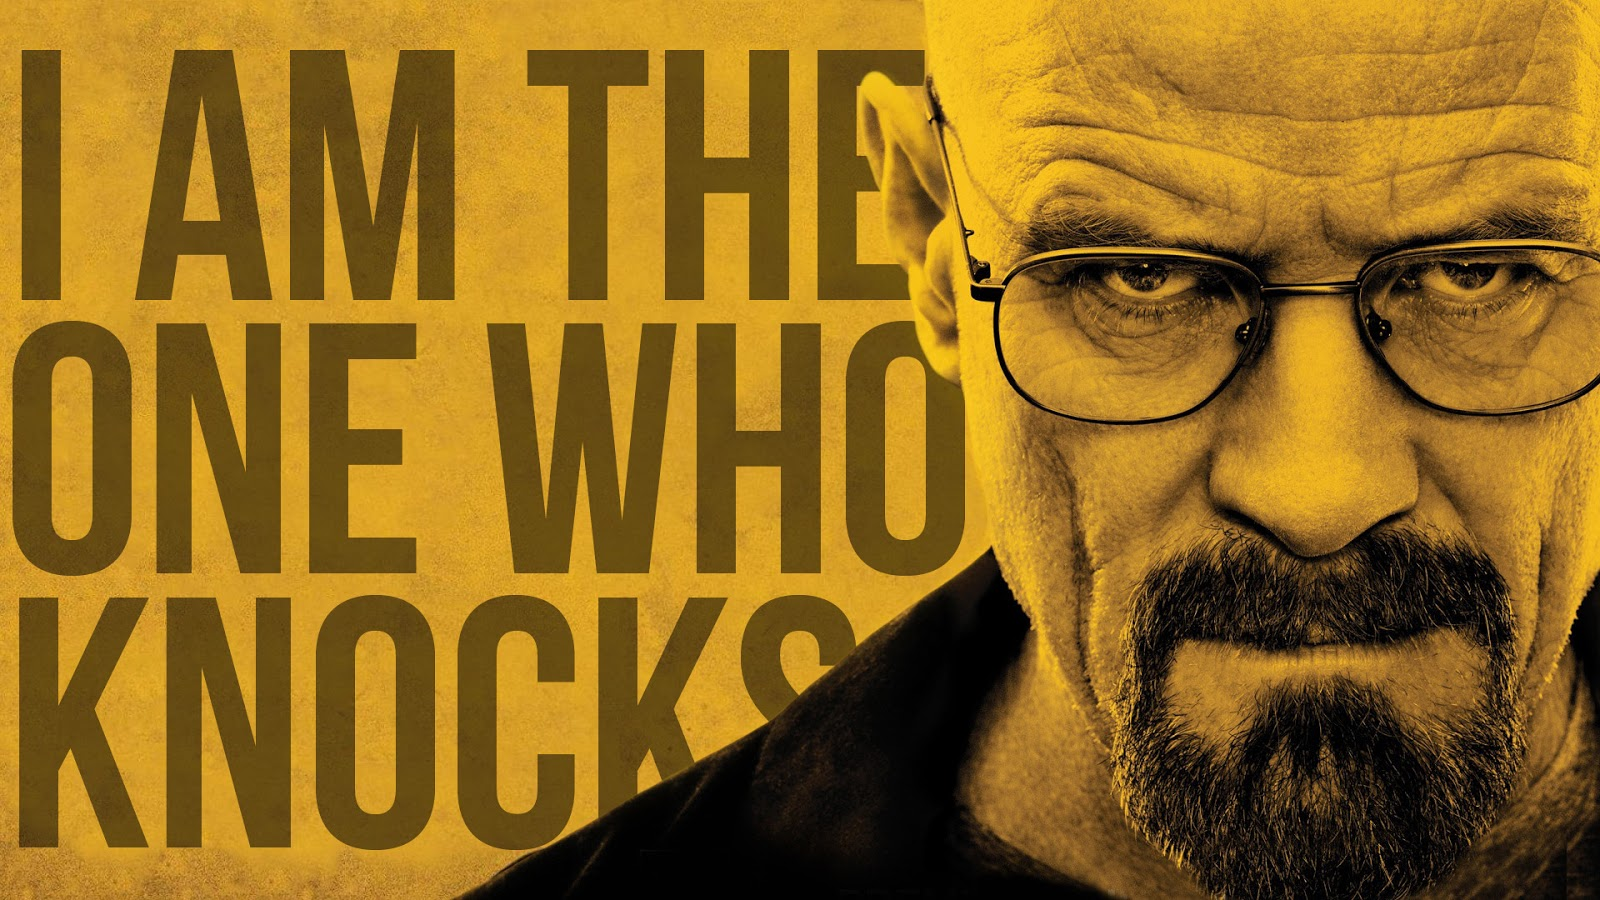 dlaczego warto obejrzeć breaking bad, netflix, netflix and chill, serial, najlepszy serial, breaking bad poster, plakat breaking bad, i am the one who knocks, walter white